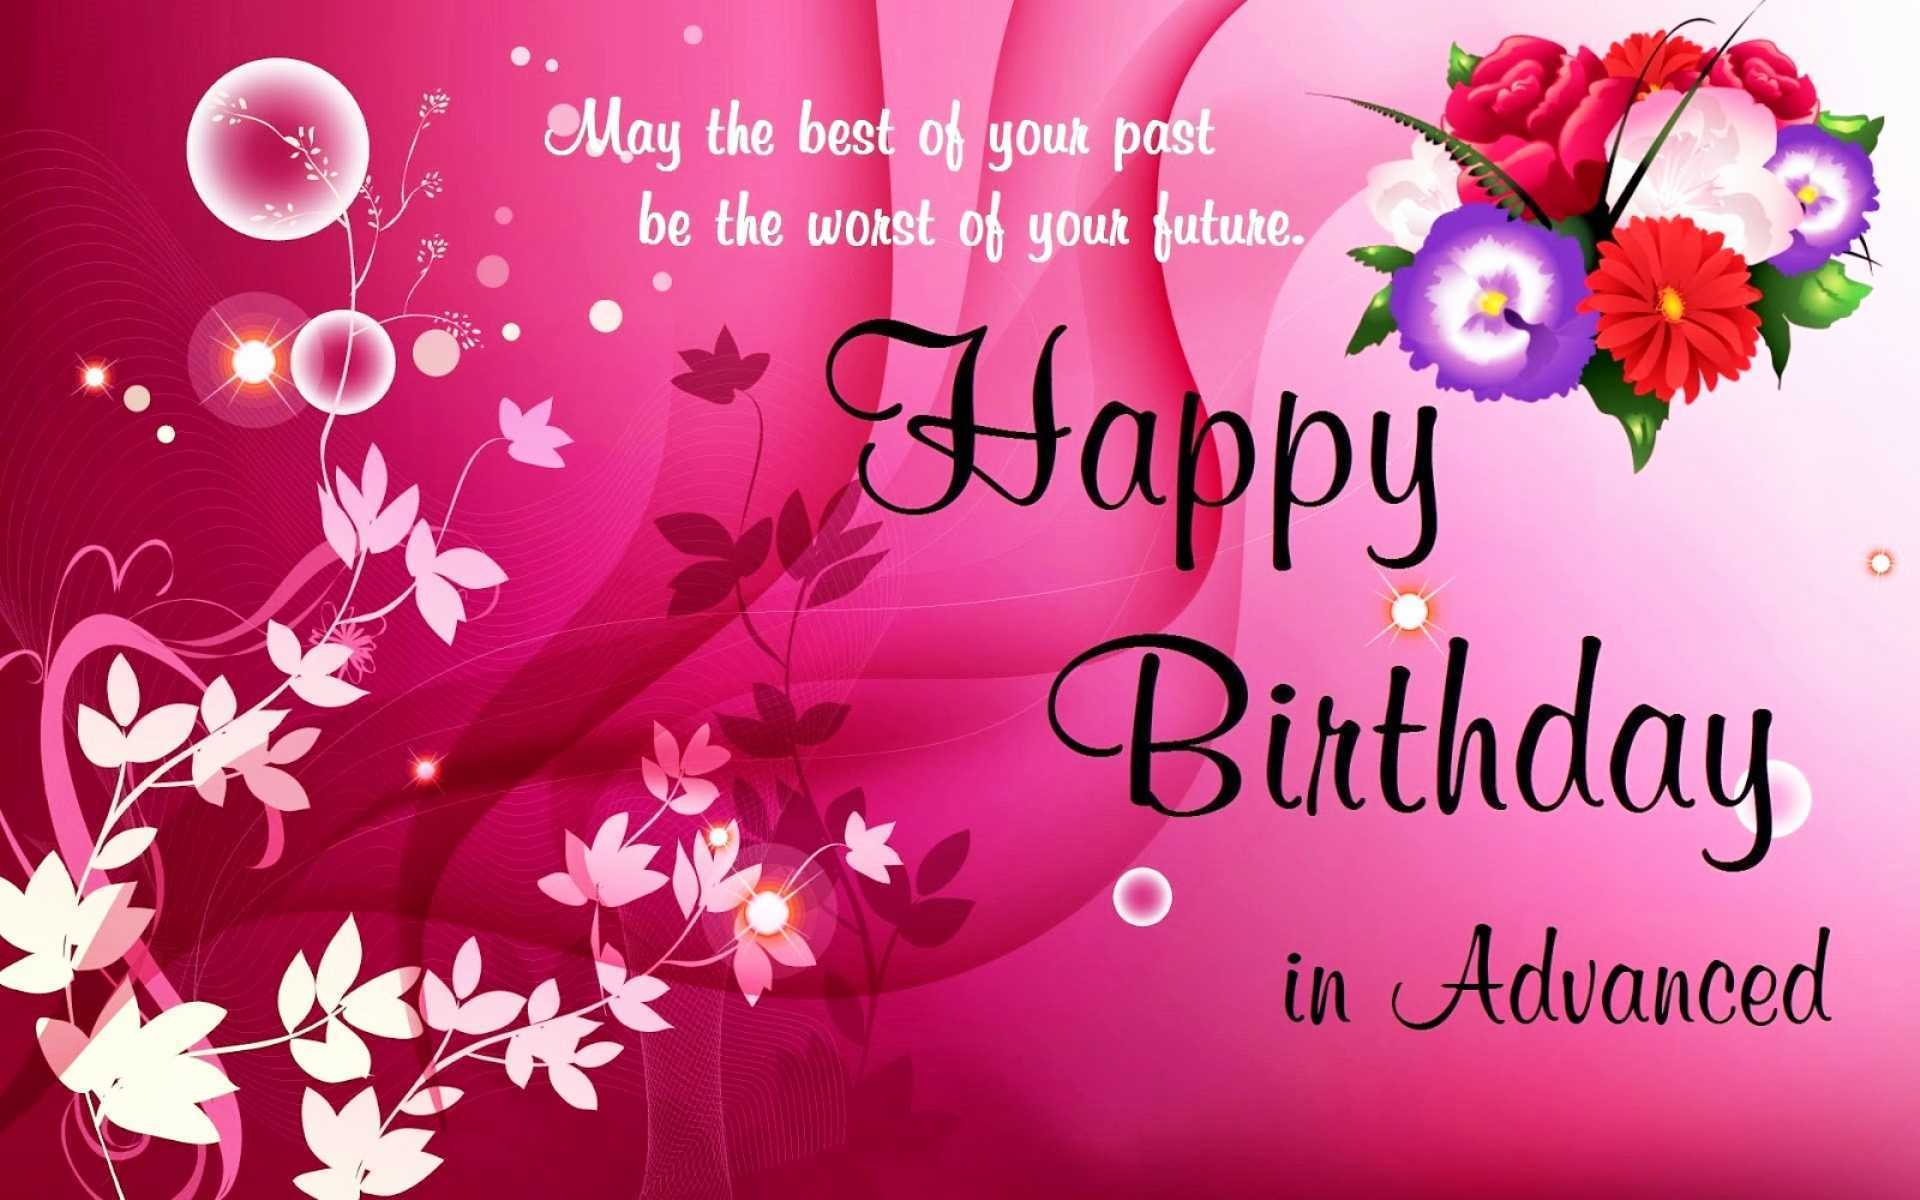 download happy birthday images hd ; happy-birthday-hd-images-download-beautiful-happy-birthday-free-with-wishes-of-happy-birthday-hd-images-download